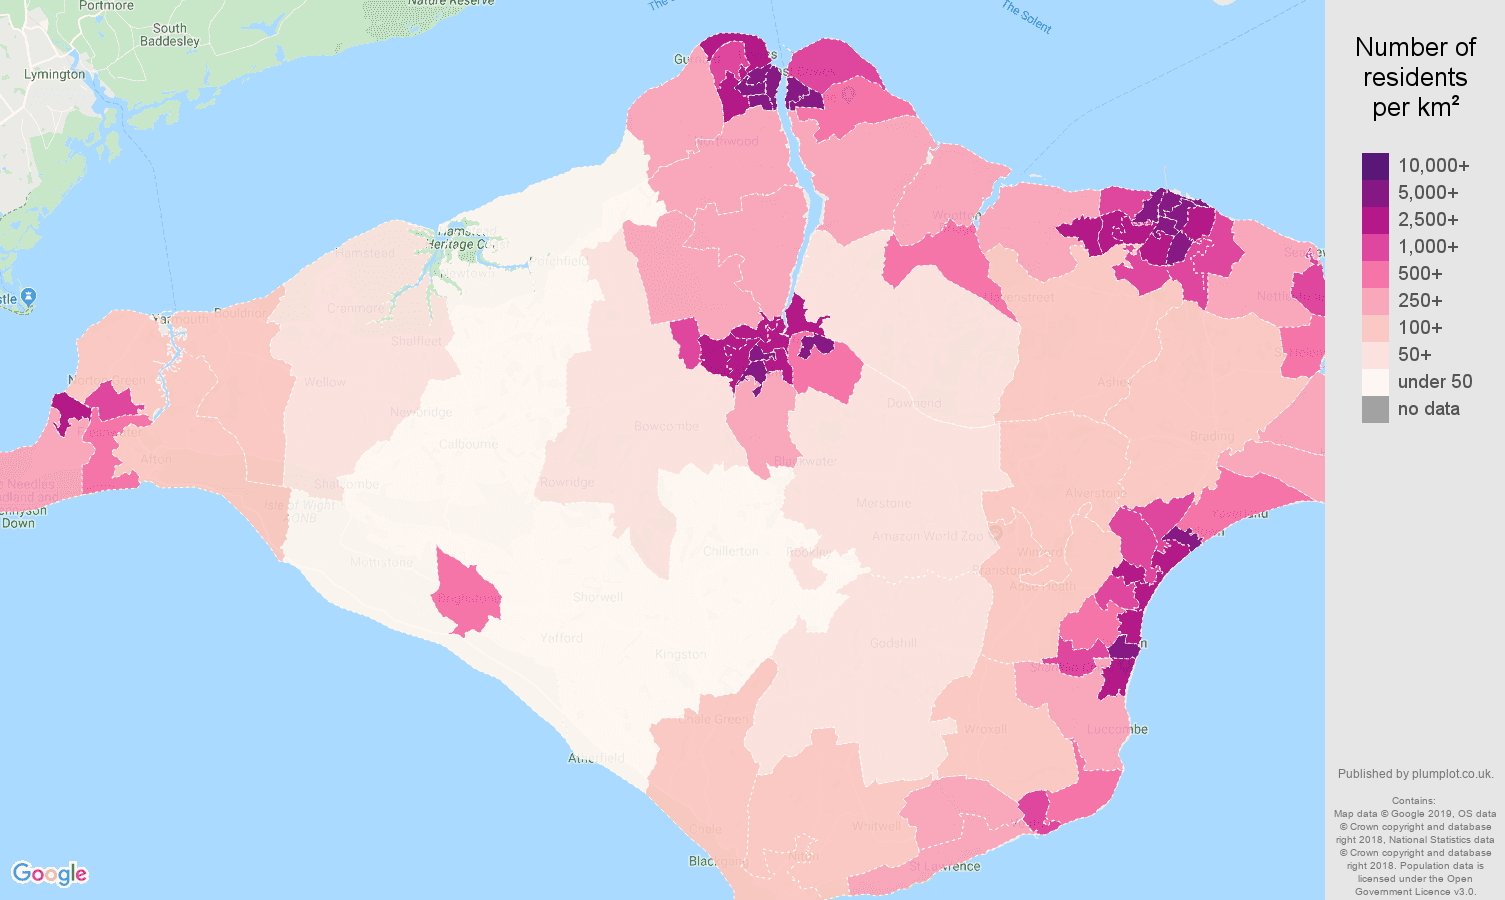 Isle of Wight population density map